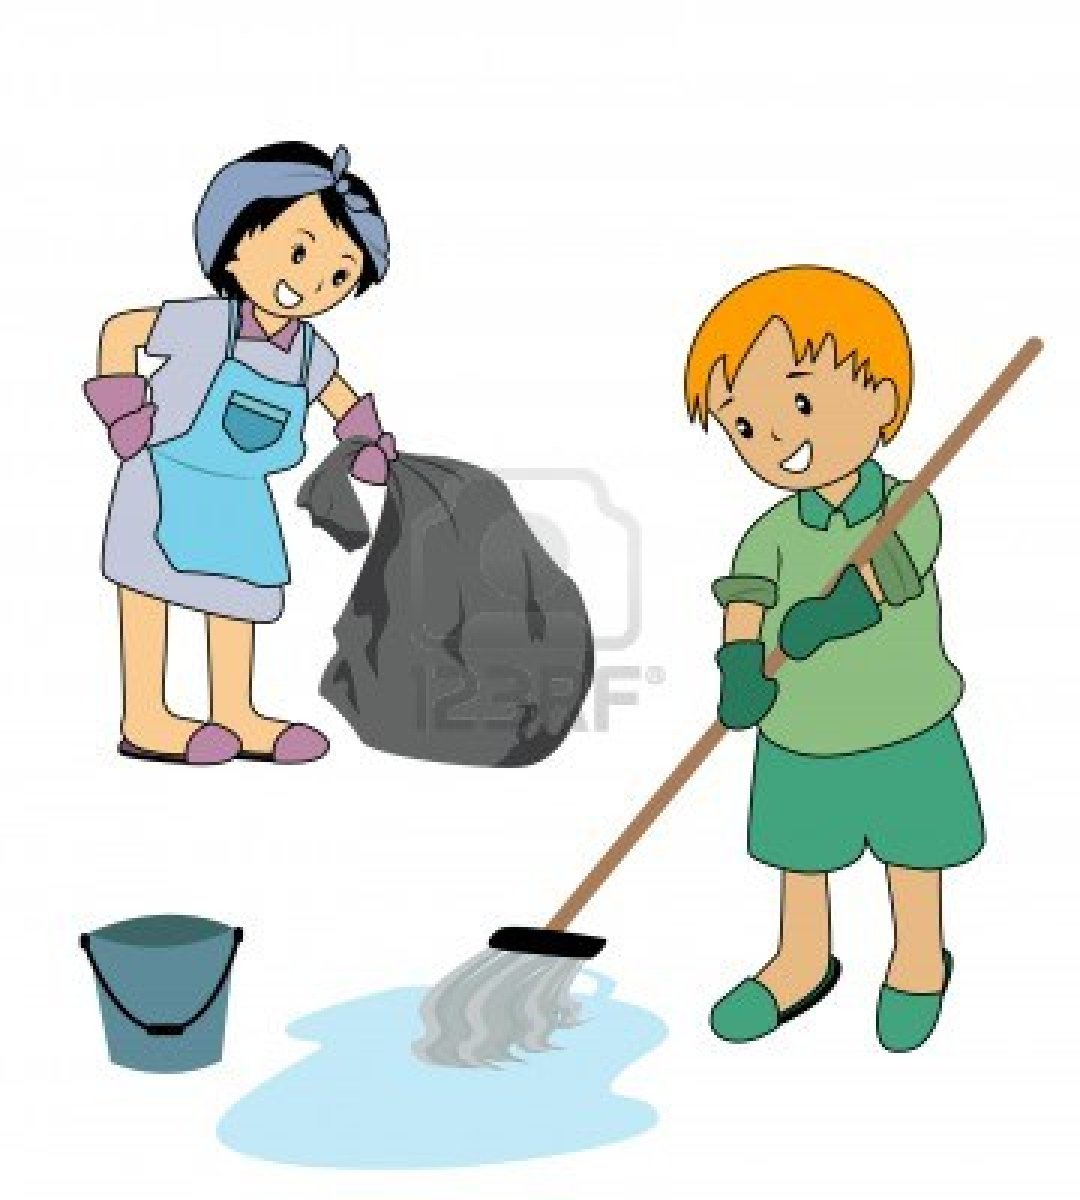 Cleaning with kids clipart clipart royalty free stock Cleaning with kids clipart - ClipartFest clipart royalty free stock